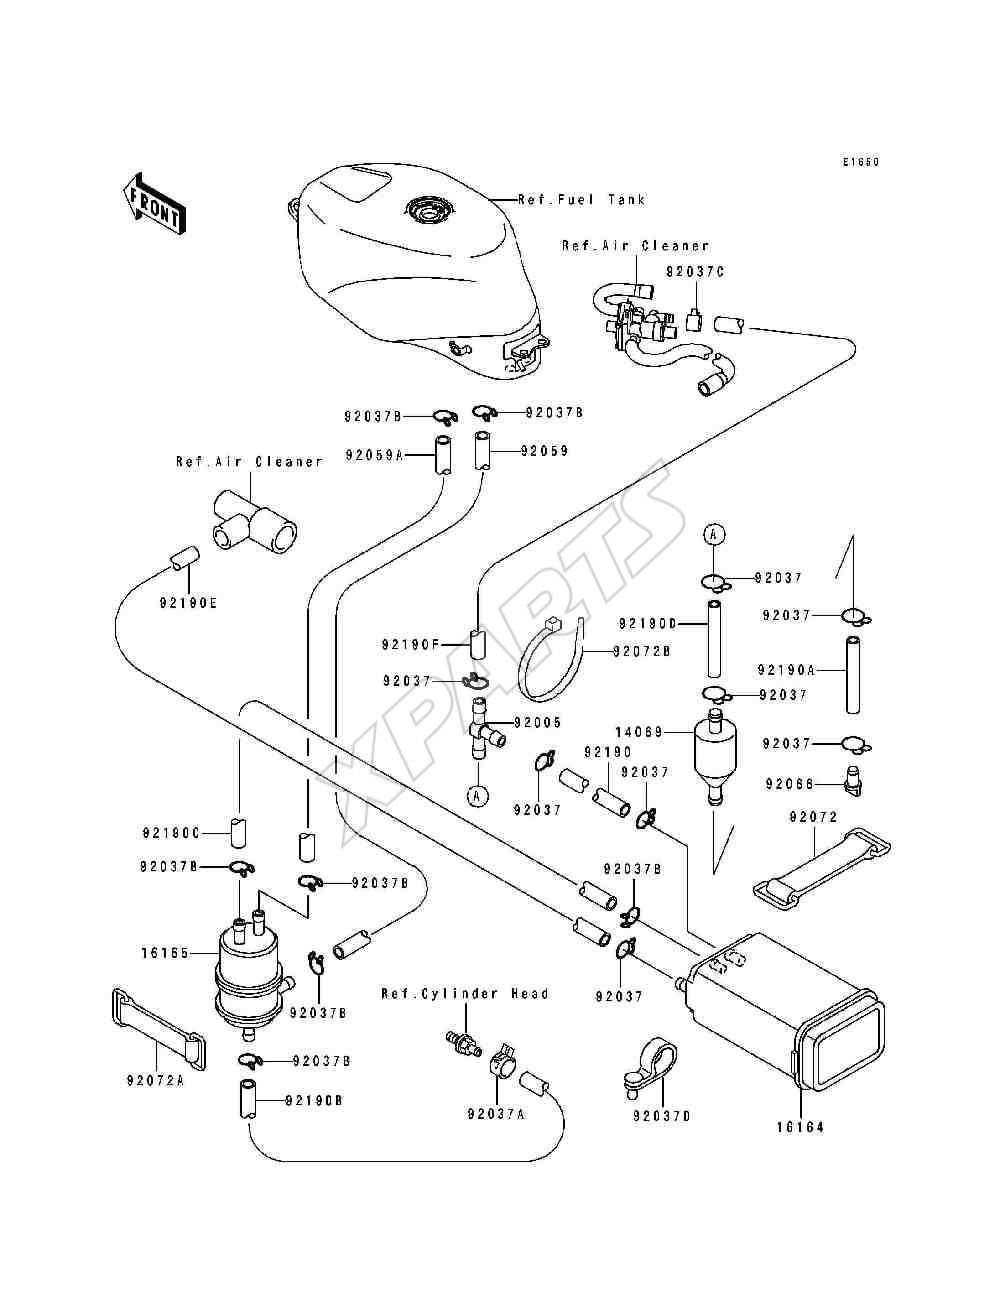 Diagram Of Suzuki Motorcycle Parts 2004 Gsx600f Wiring Harness Diagram